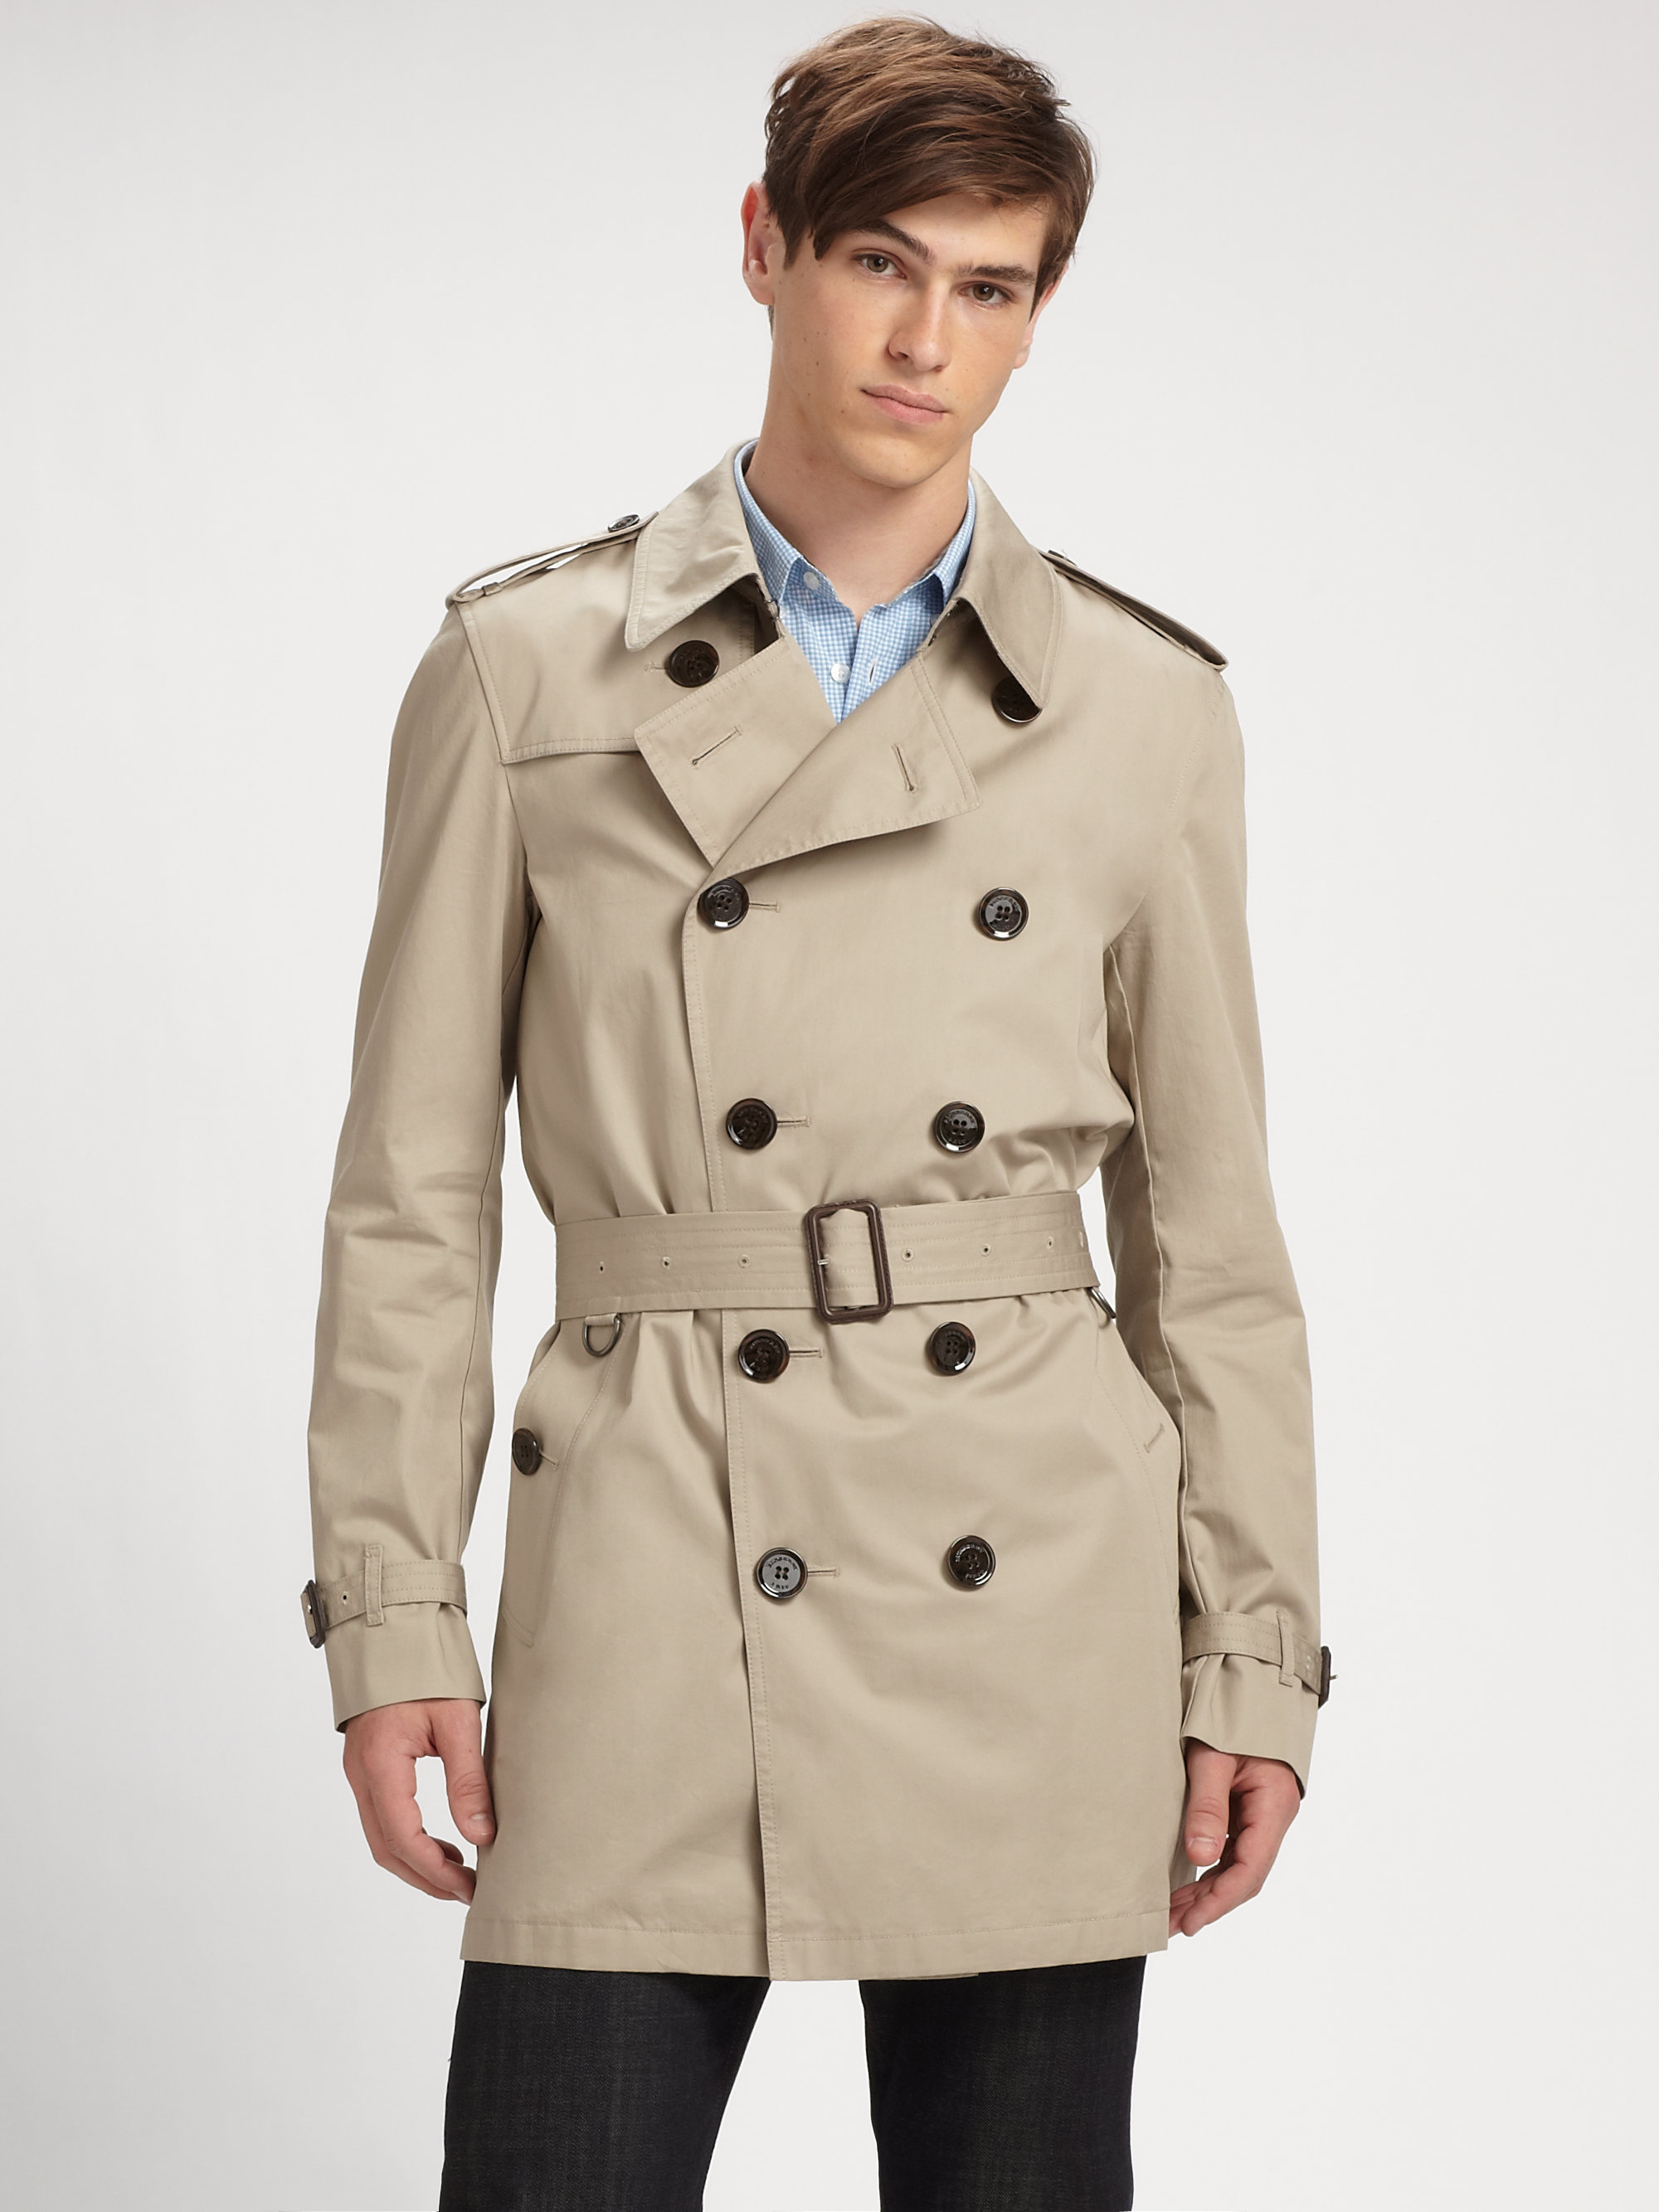 a5ad64a4ec01 Lyst - Burberry Brit Trench Coat in Brown for Men